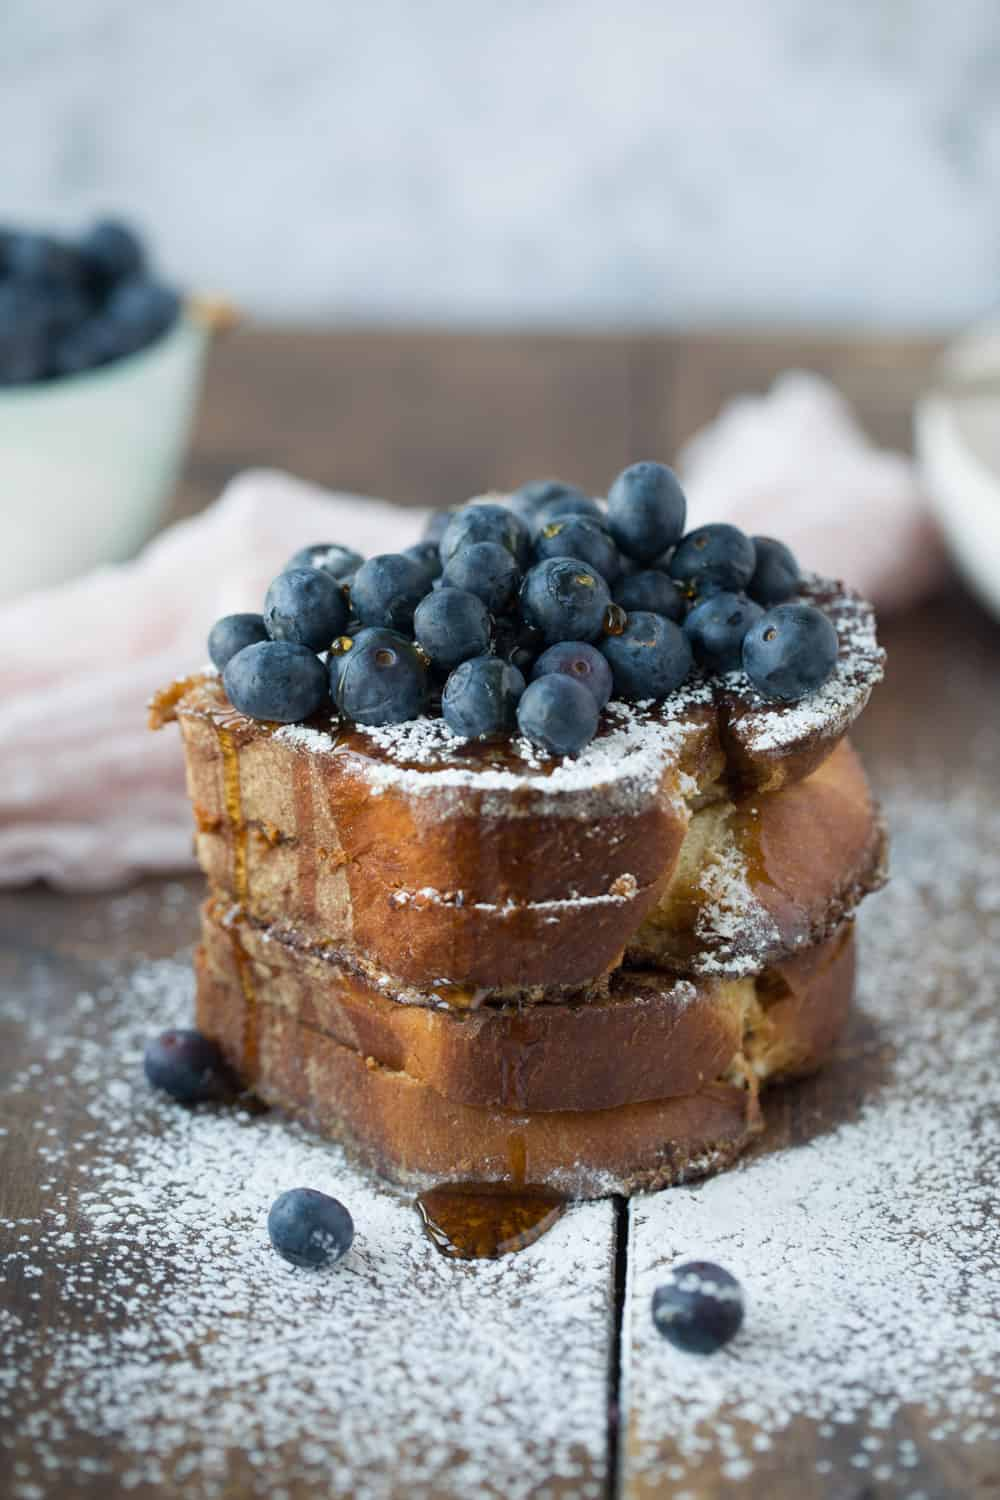 A stack of French toast covered with blueberries, drizzled with maple syrup and sprinkled with powdered sugar